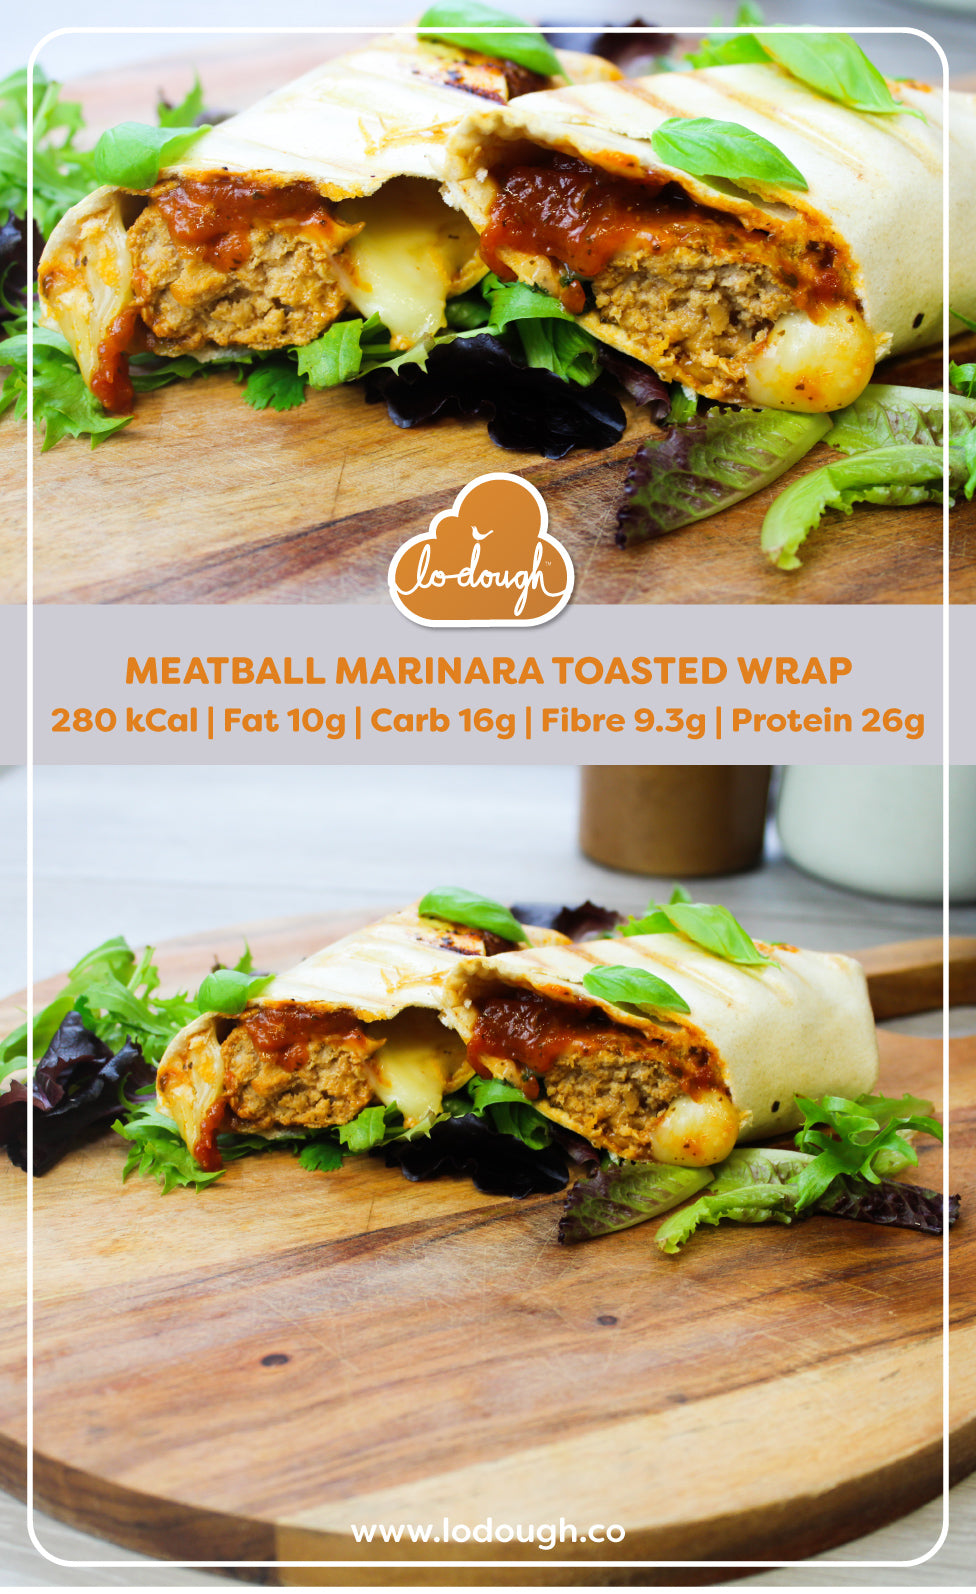 Meatball Marinara Toasted Wrap